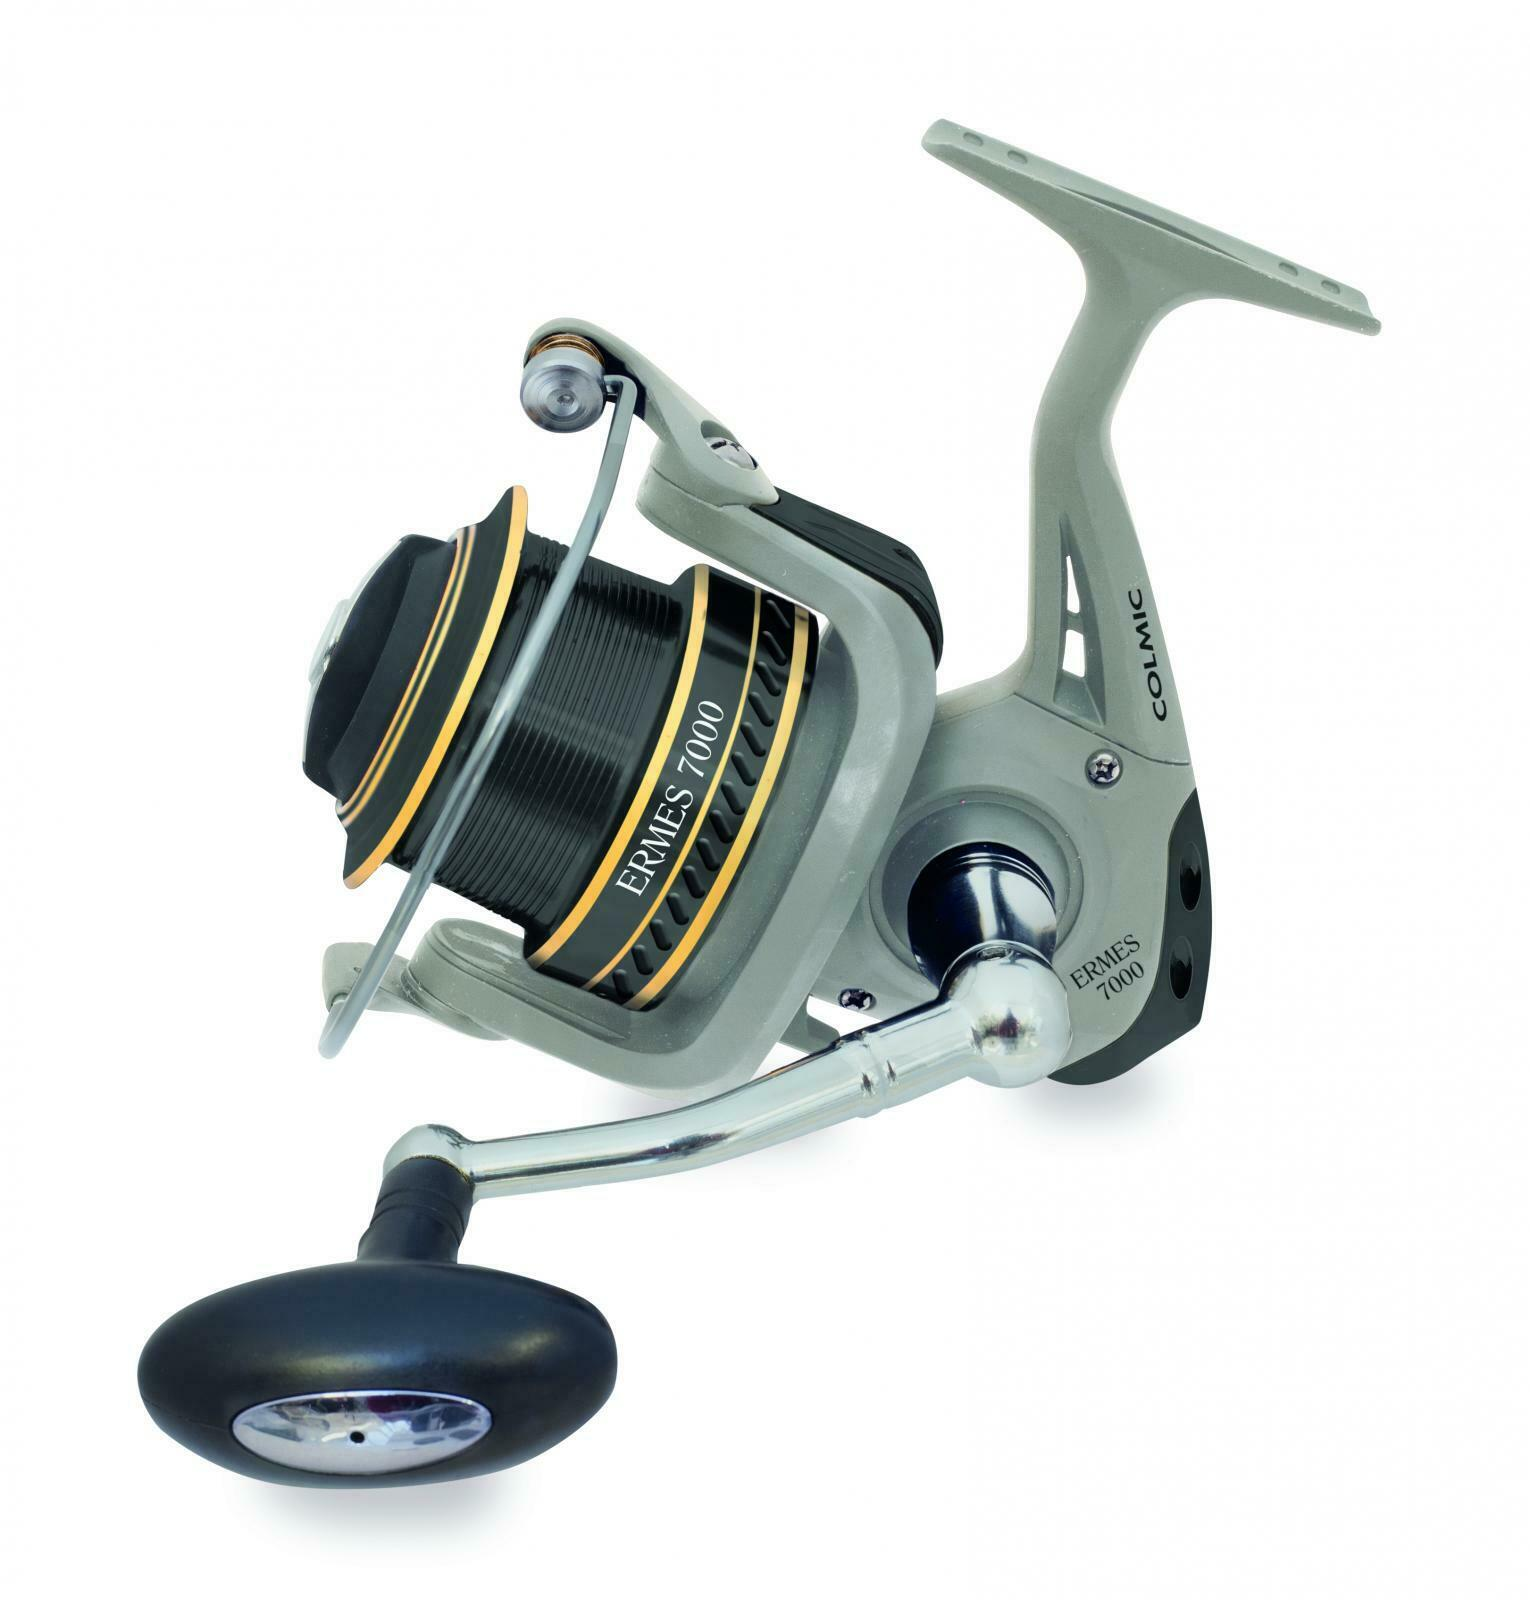 MULERM70 Colmic mulinello Hermes 7000 pesca greenical bolentino surf 9bb     RNG